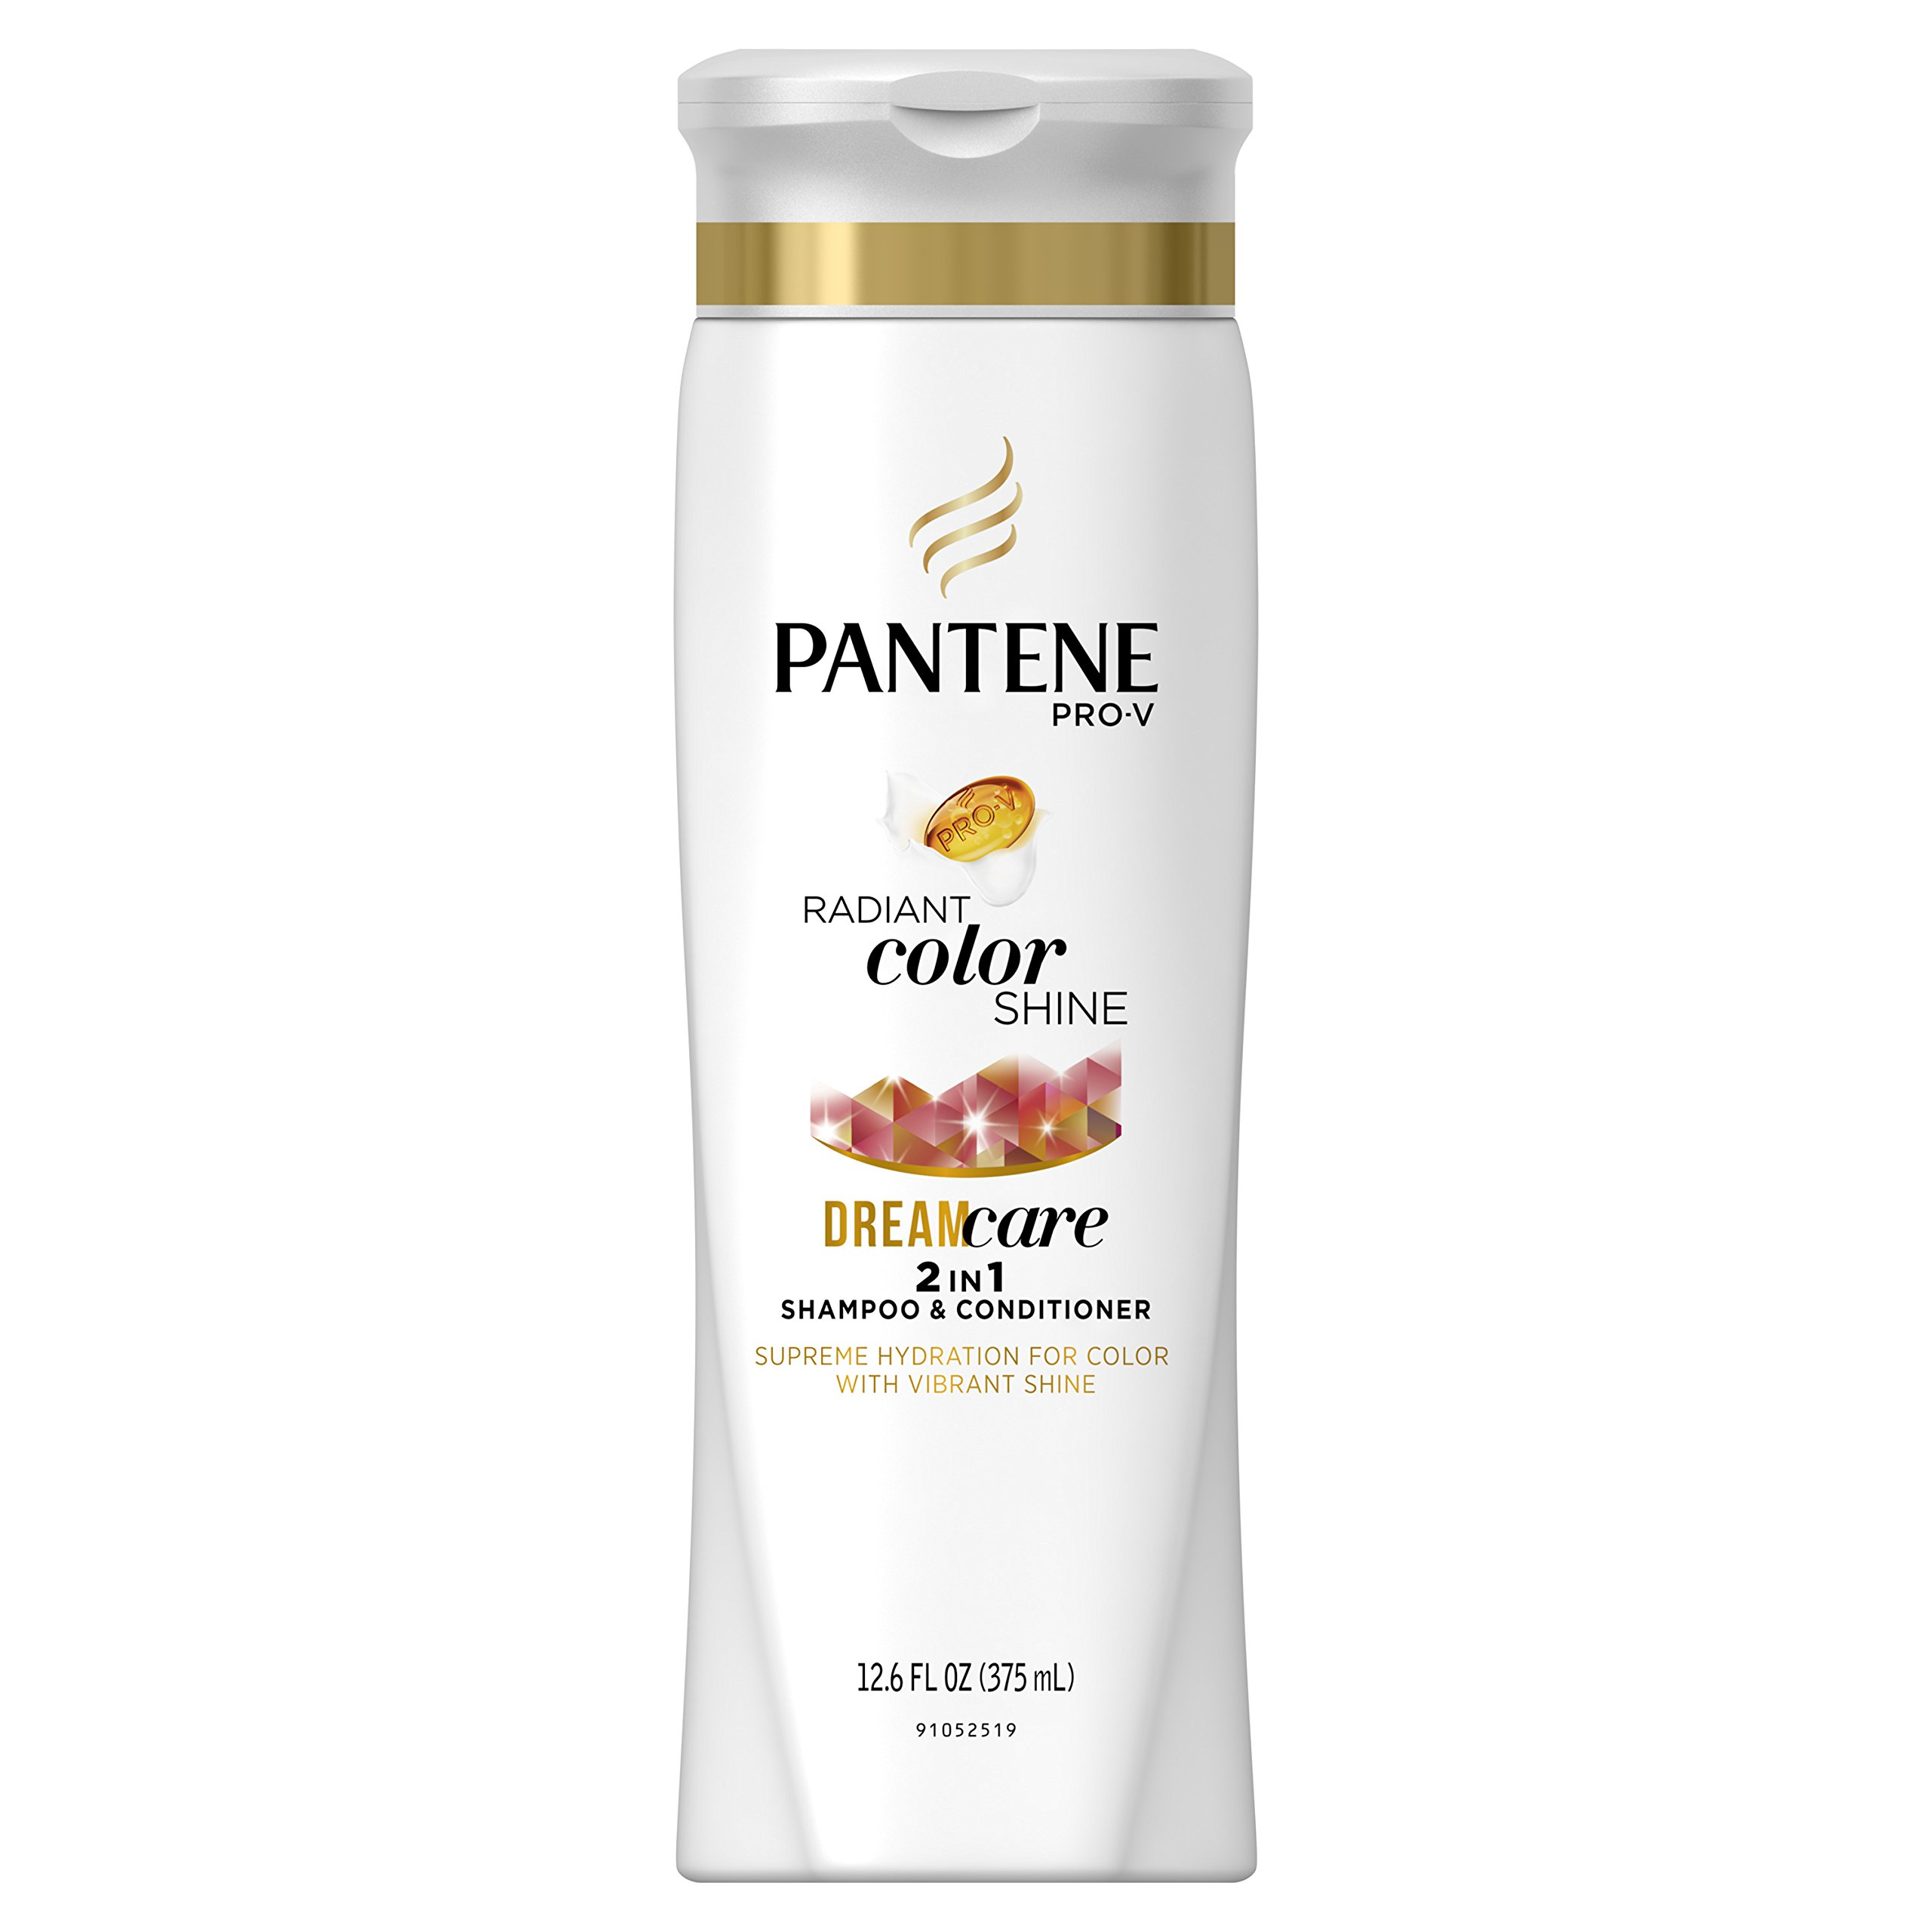 Pantene Pro-V Radiant Color Shine Dream Care 2in1 shampoo & Conditioner with vibrant shine 12.6 Oz